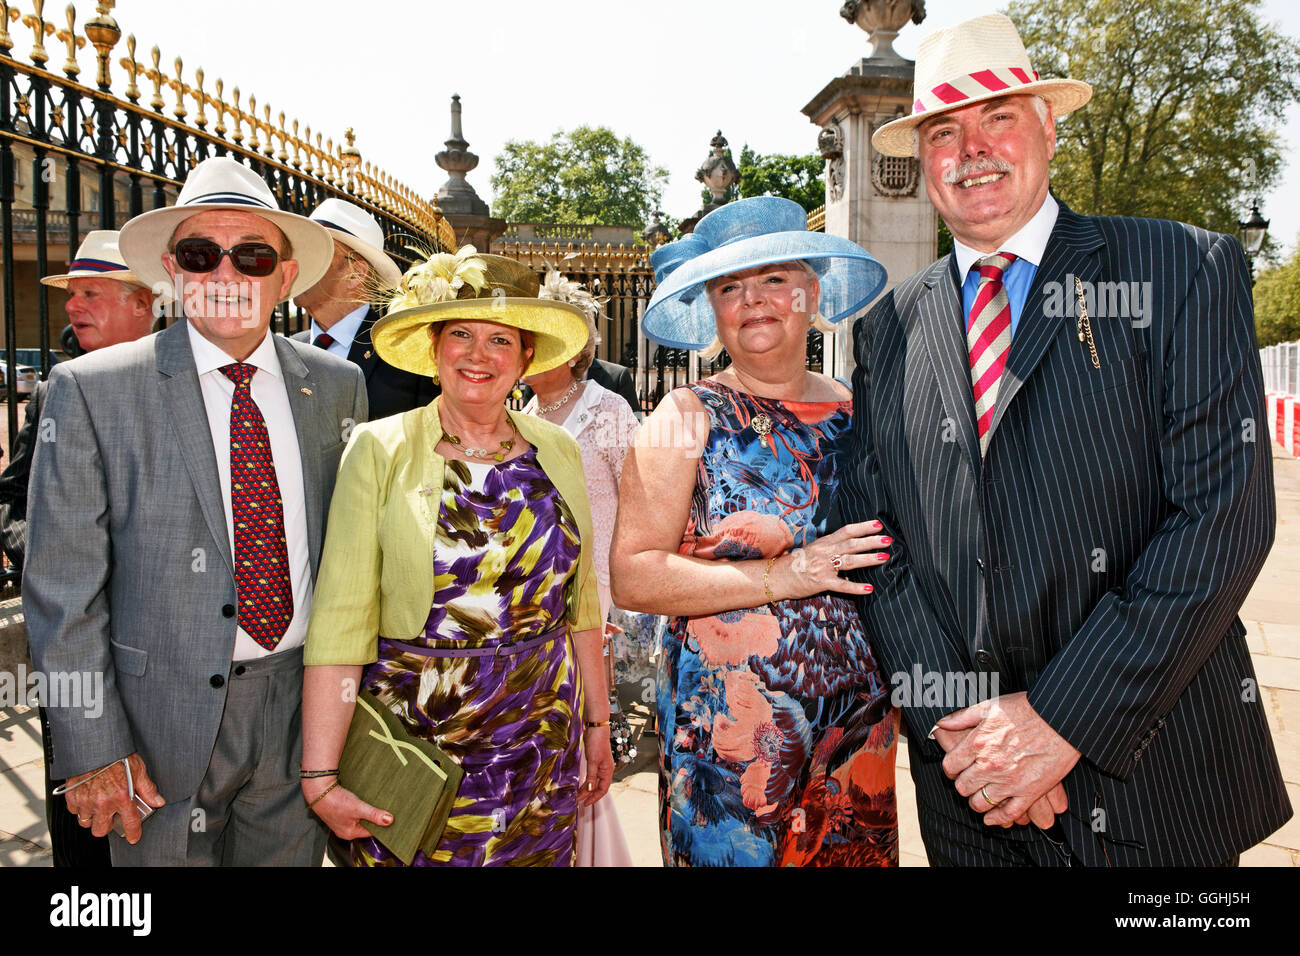 Guests of the Queens Garden Party waiting to get into the grounds of Buckingham Palace, London, England, United - Stock Image